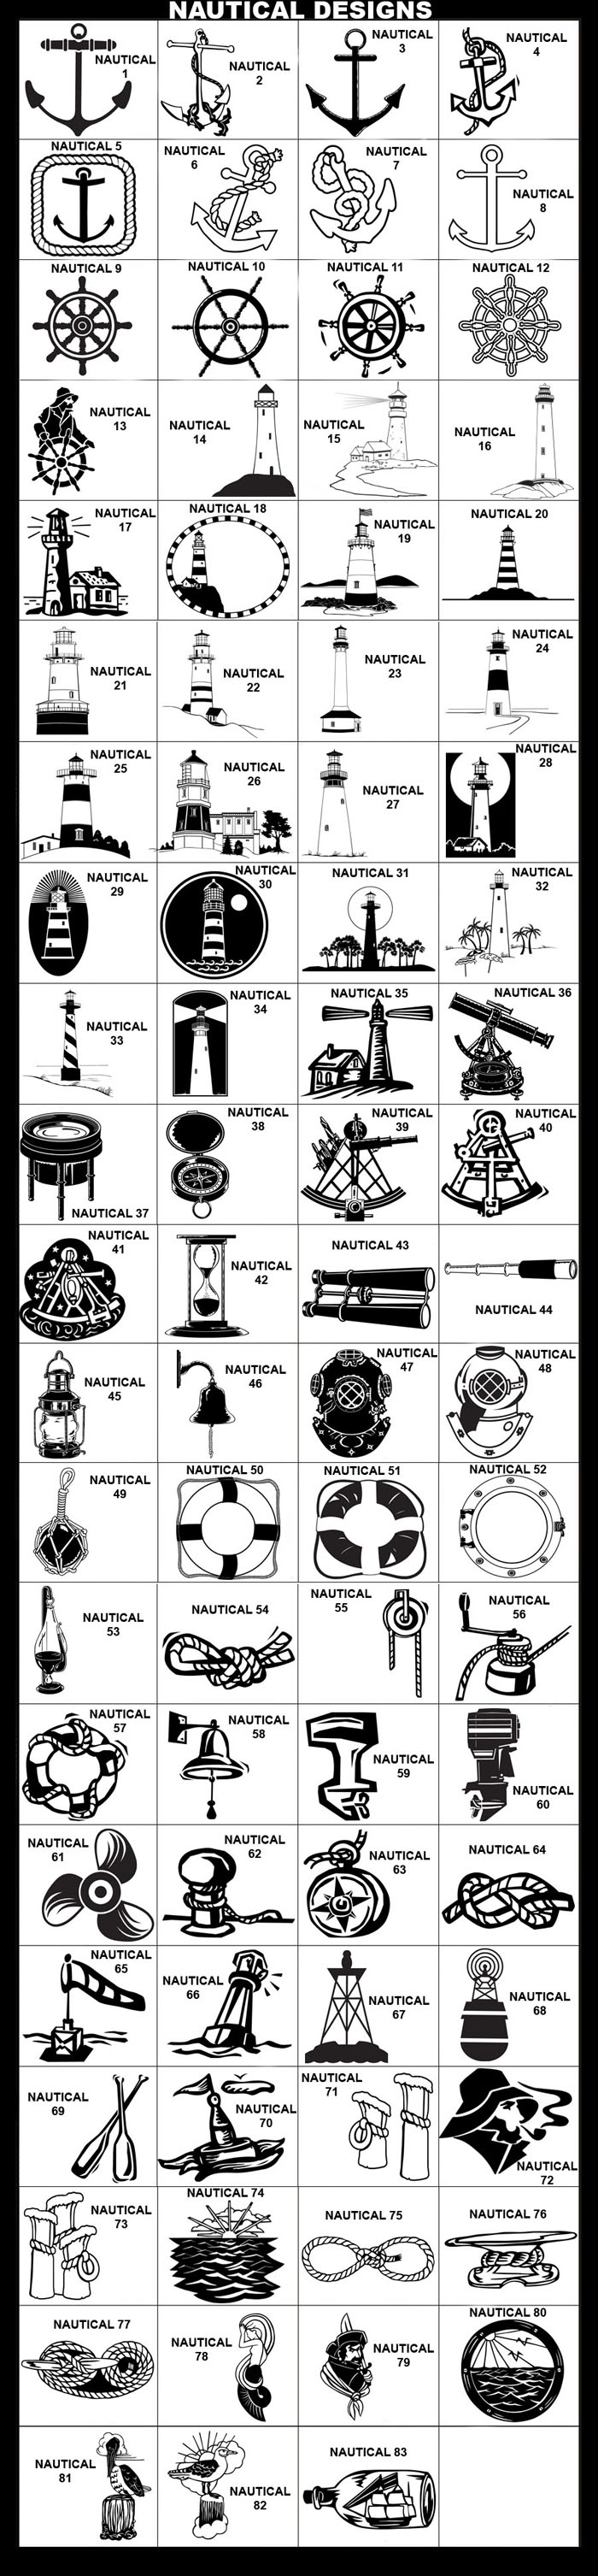 Nautical, Alidade Compass, Chart Magnifier, Compass, Sextant, Hourglass, Binoculars, Lantern, Bell, Ship Bell, Fishing Float, Life Ring, Life Preserver, Porthole, Weatherglass, Nautical Rope, Pulley, Boat Motor, Outboard Motor, Propeller, Nautical Knot, Nautical, Buoy, Paddles, Oars, Ocean Sunset, Bowline, Cleat, Cleat & Rope, Mermaid, Pirate, Porthole View, Pelican, Seagulls